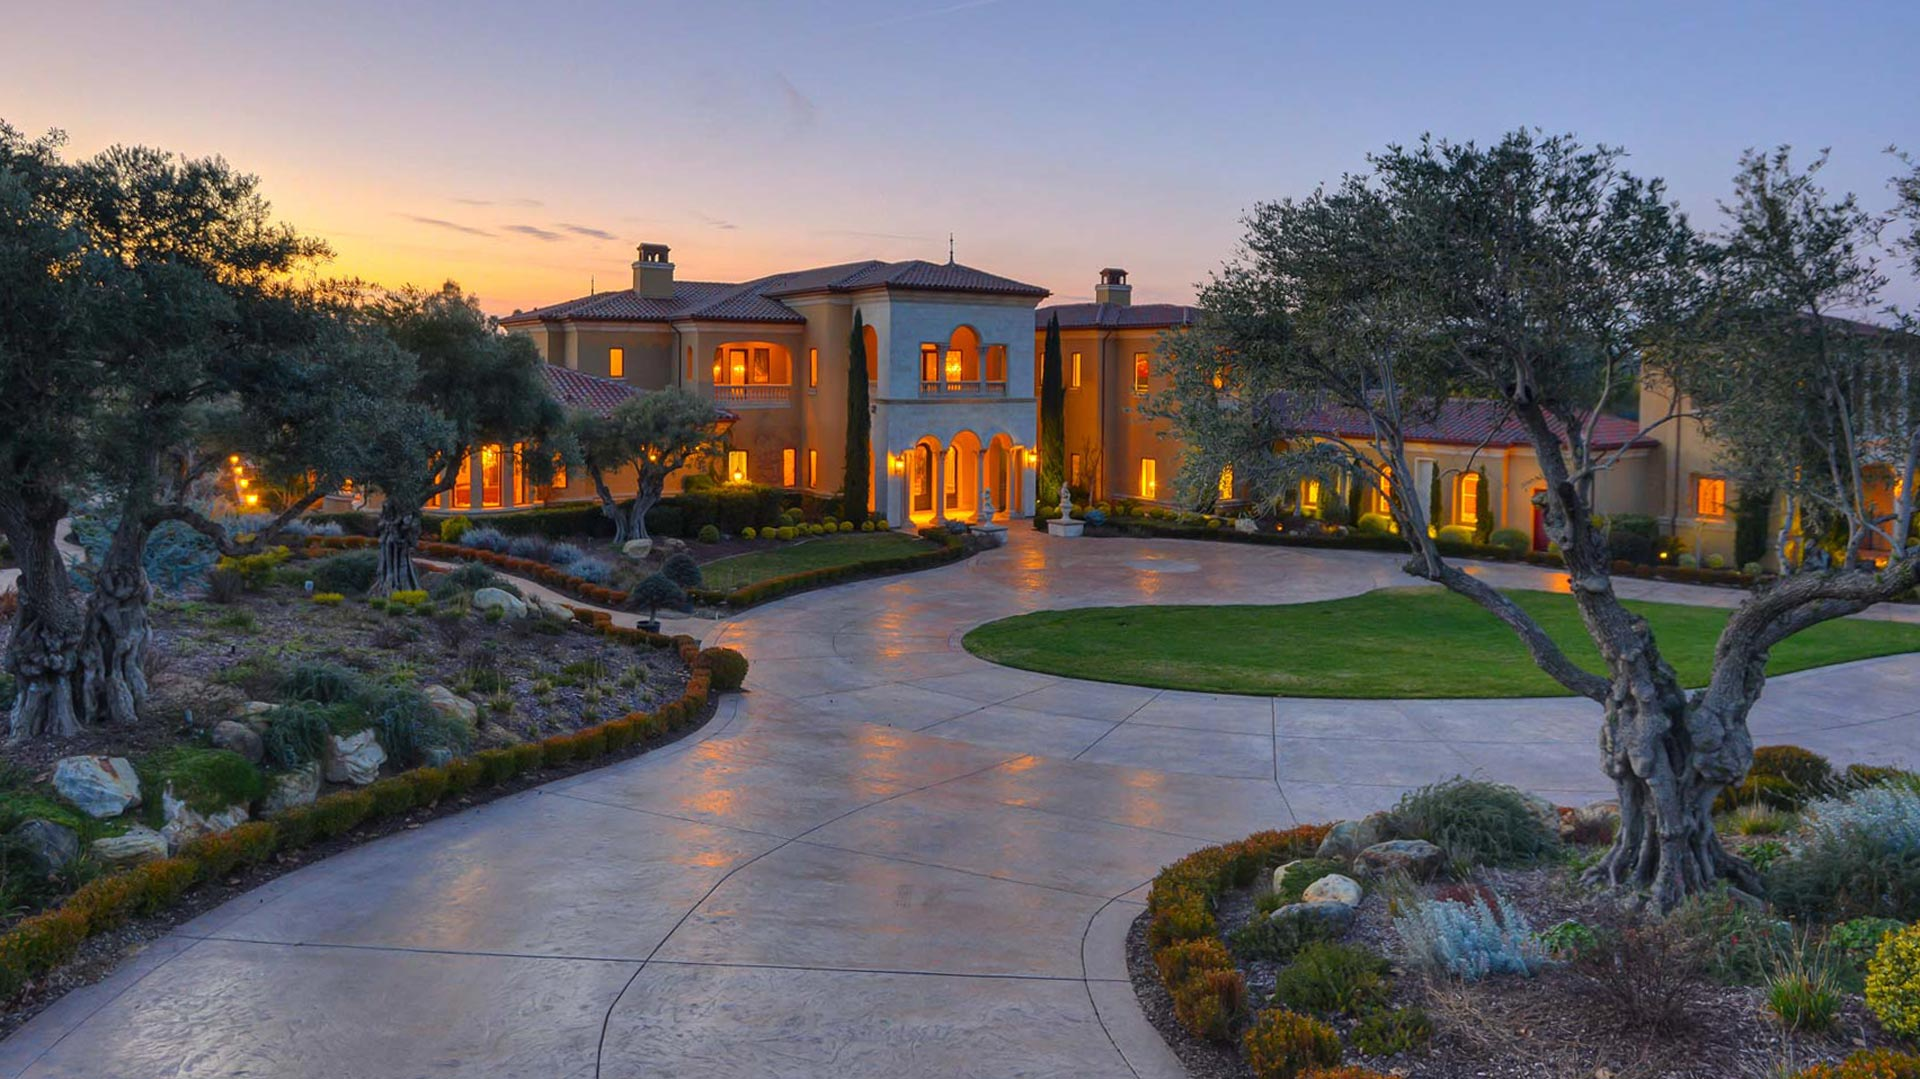 granite bay home and driveway at sunset